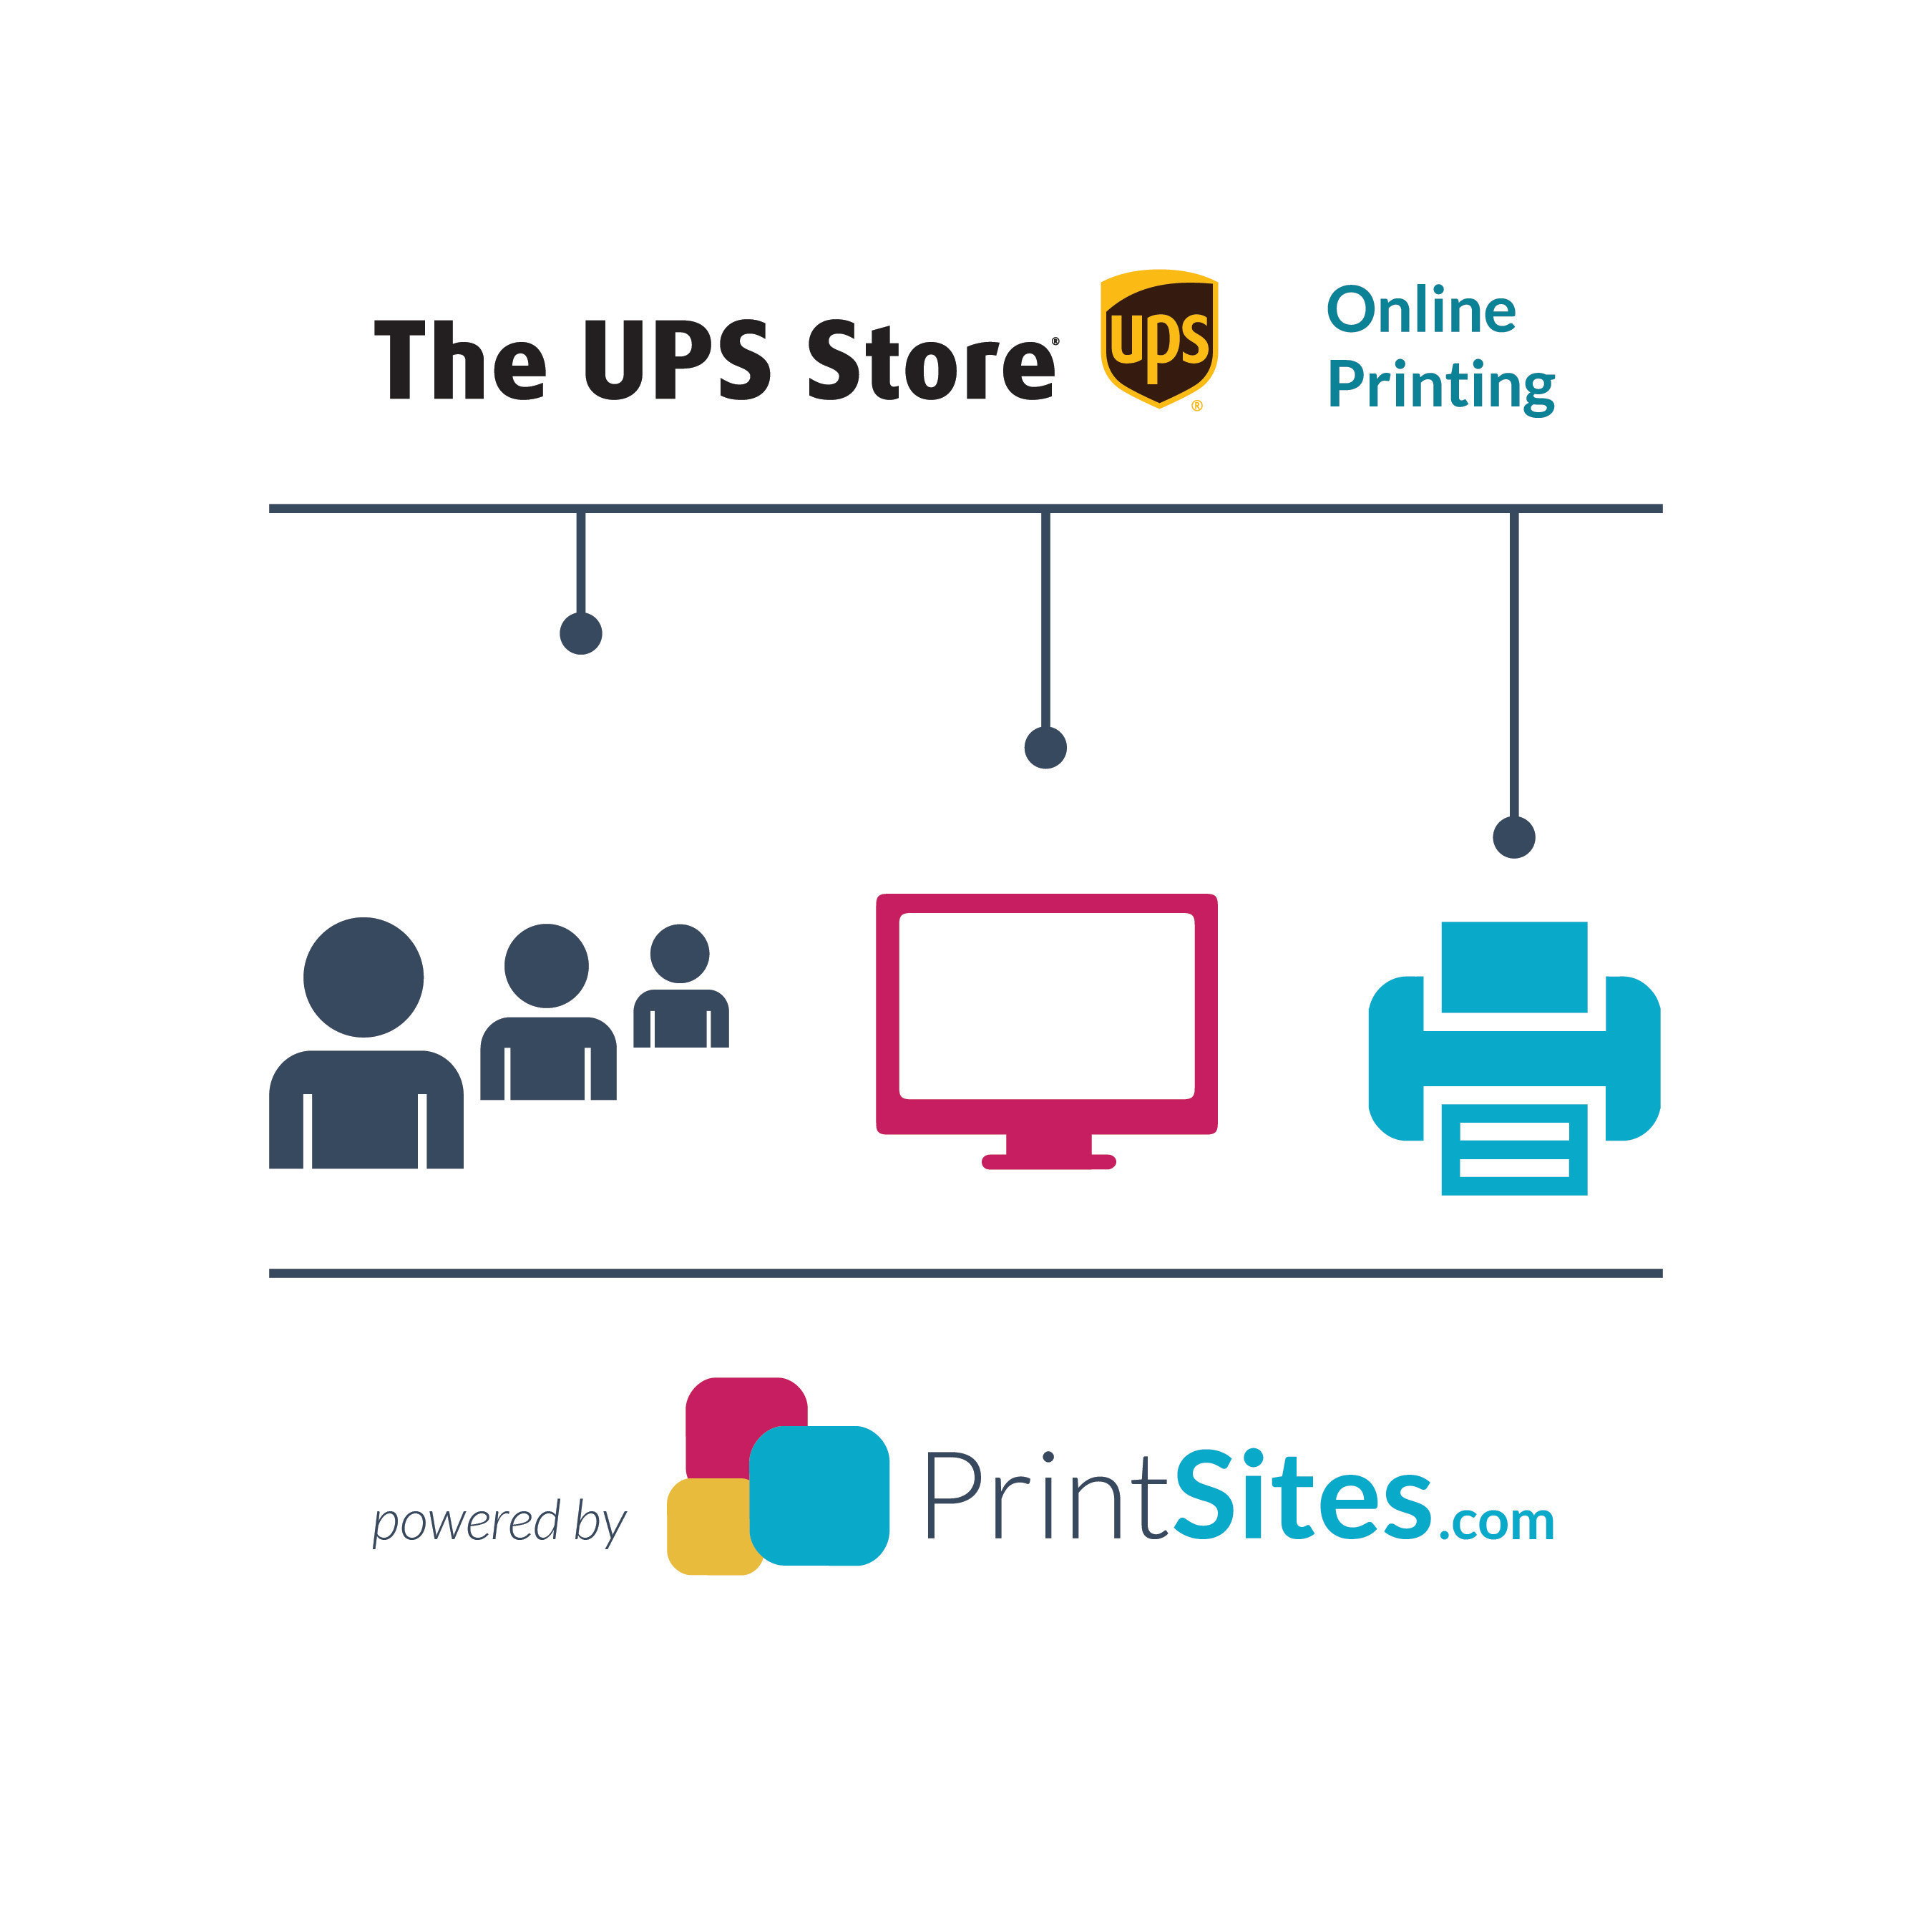 Over 4,400 The UPS Store locations put customer convenience first with new online print platform powered by ...